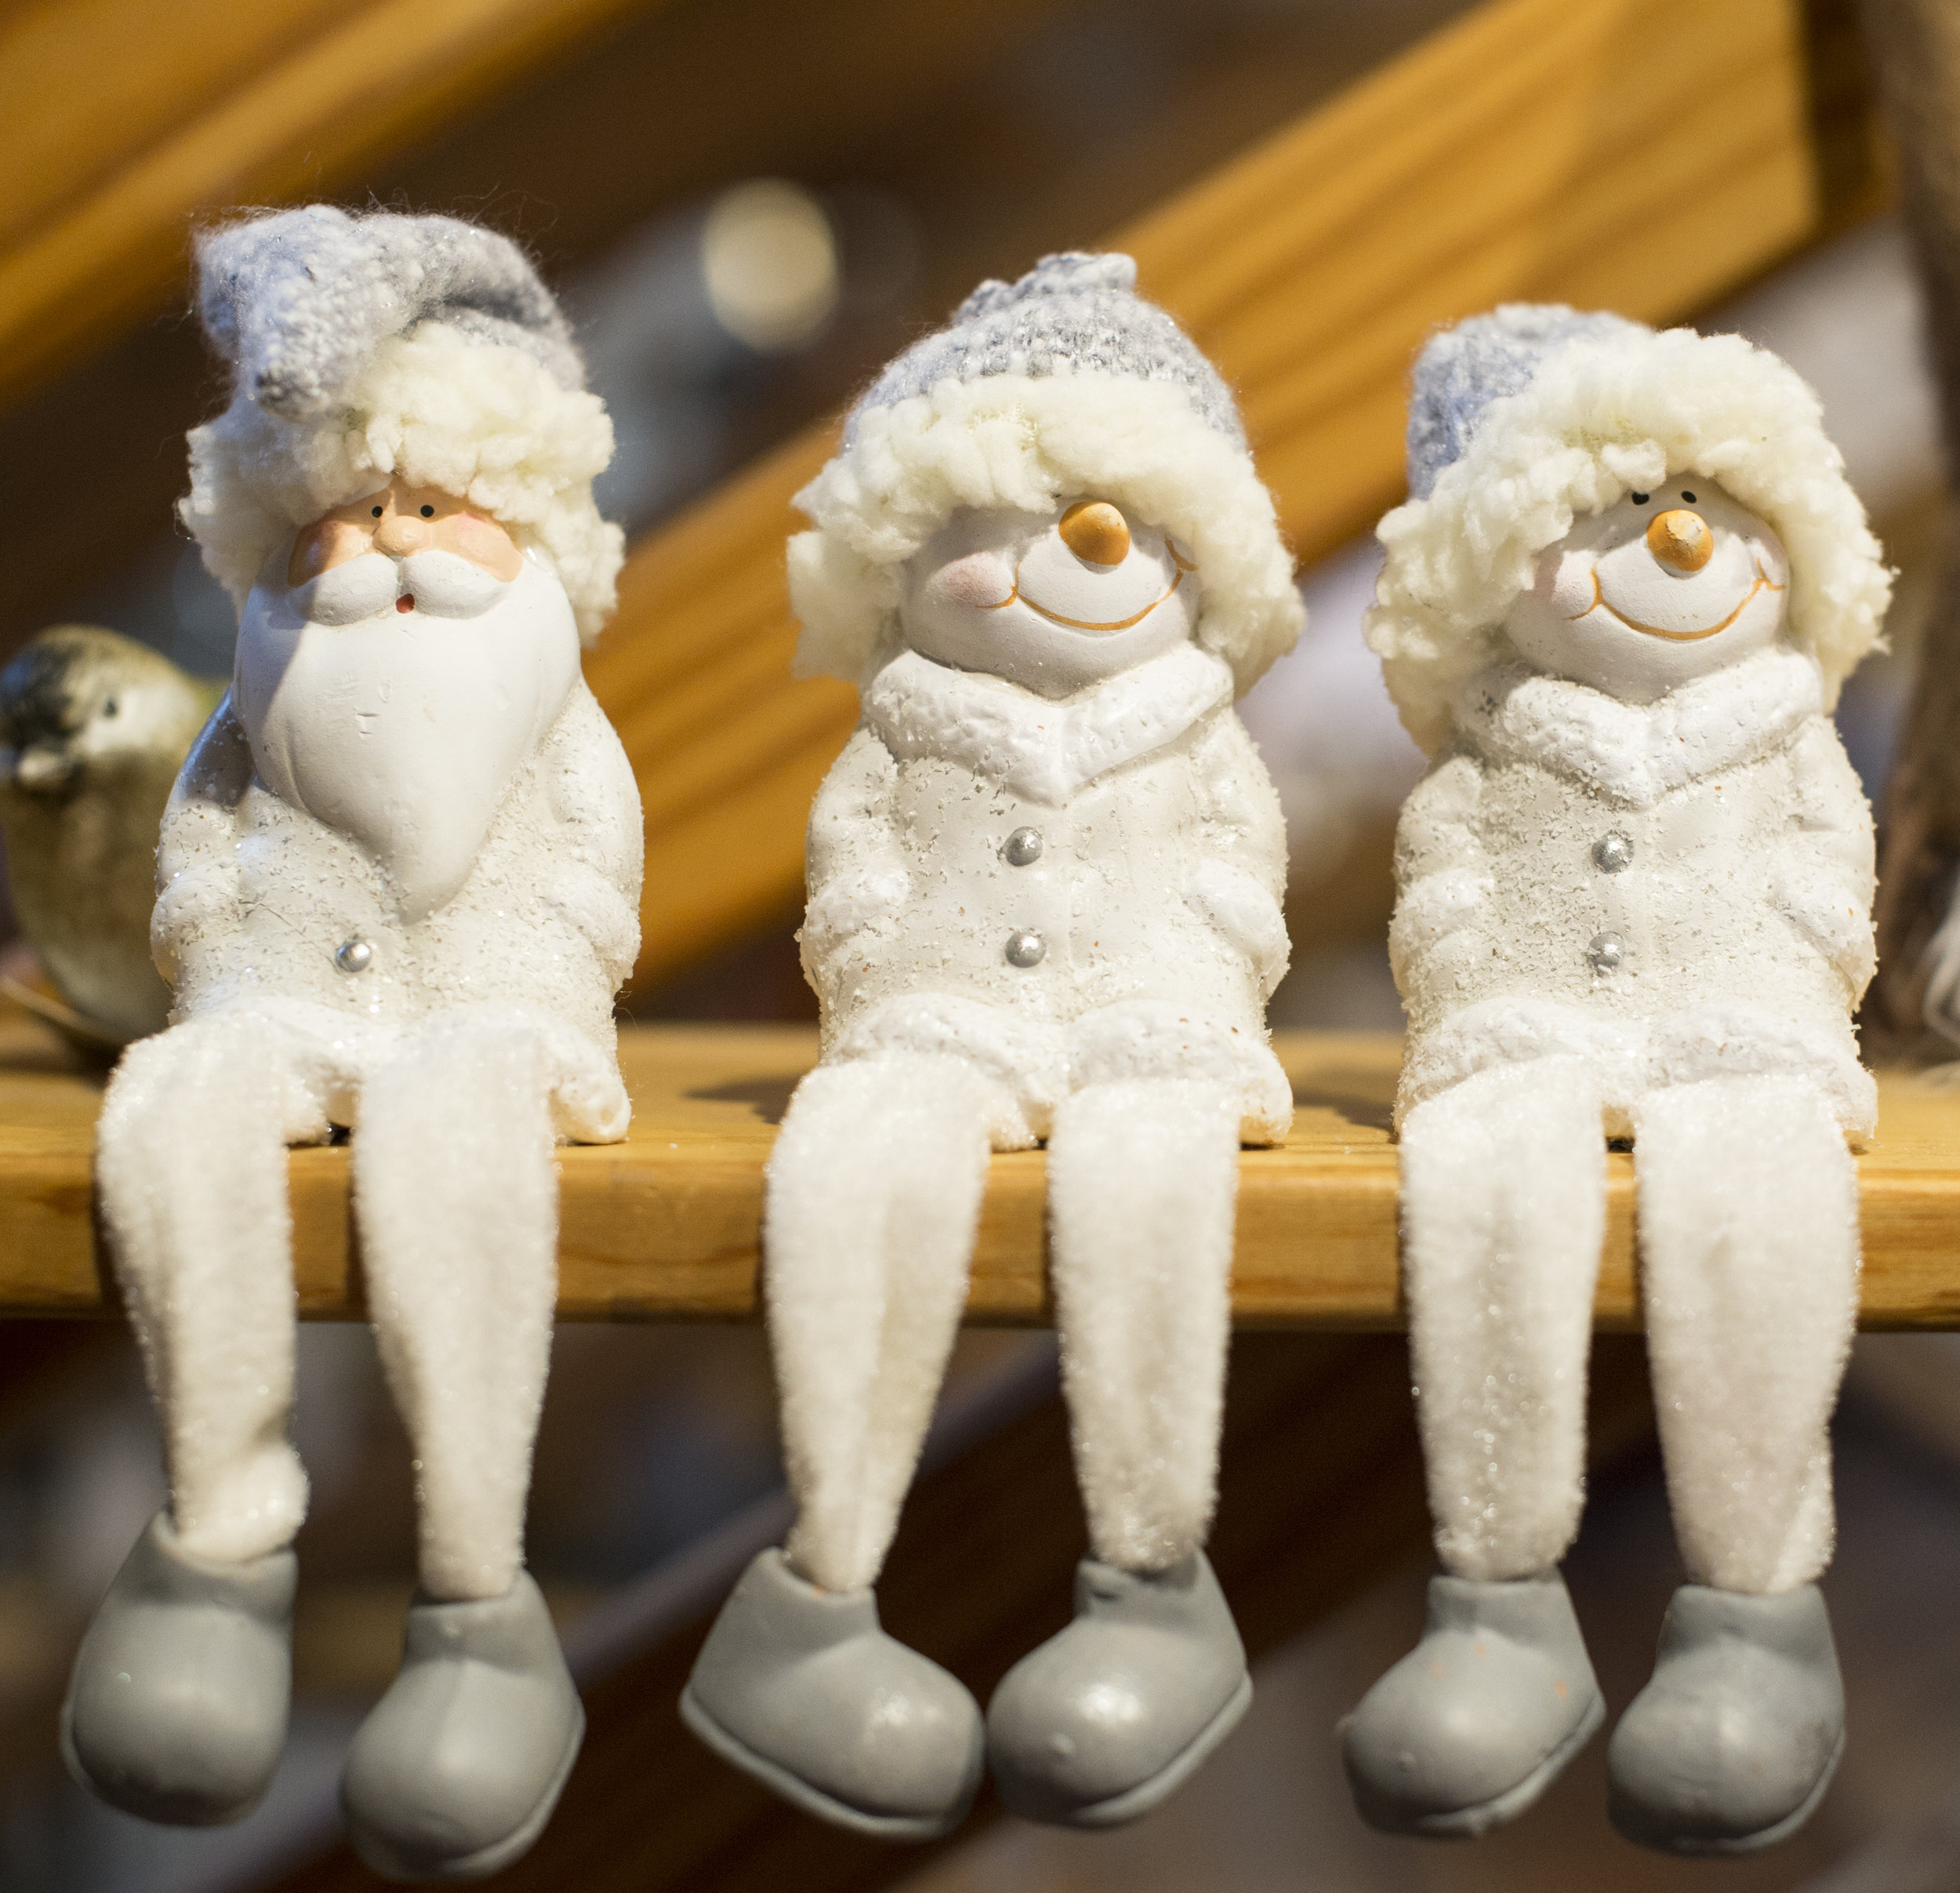 Durham_MorganImports_Snowmen&SantaSitting_12172016.jpg